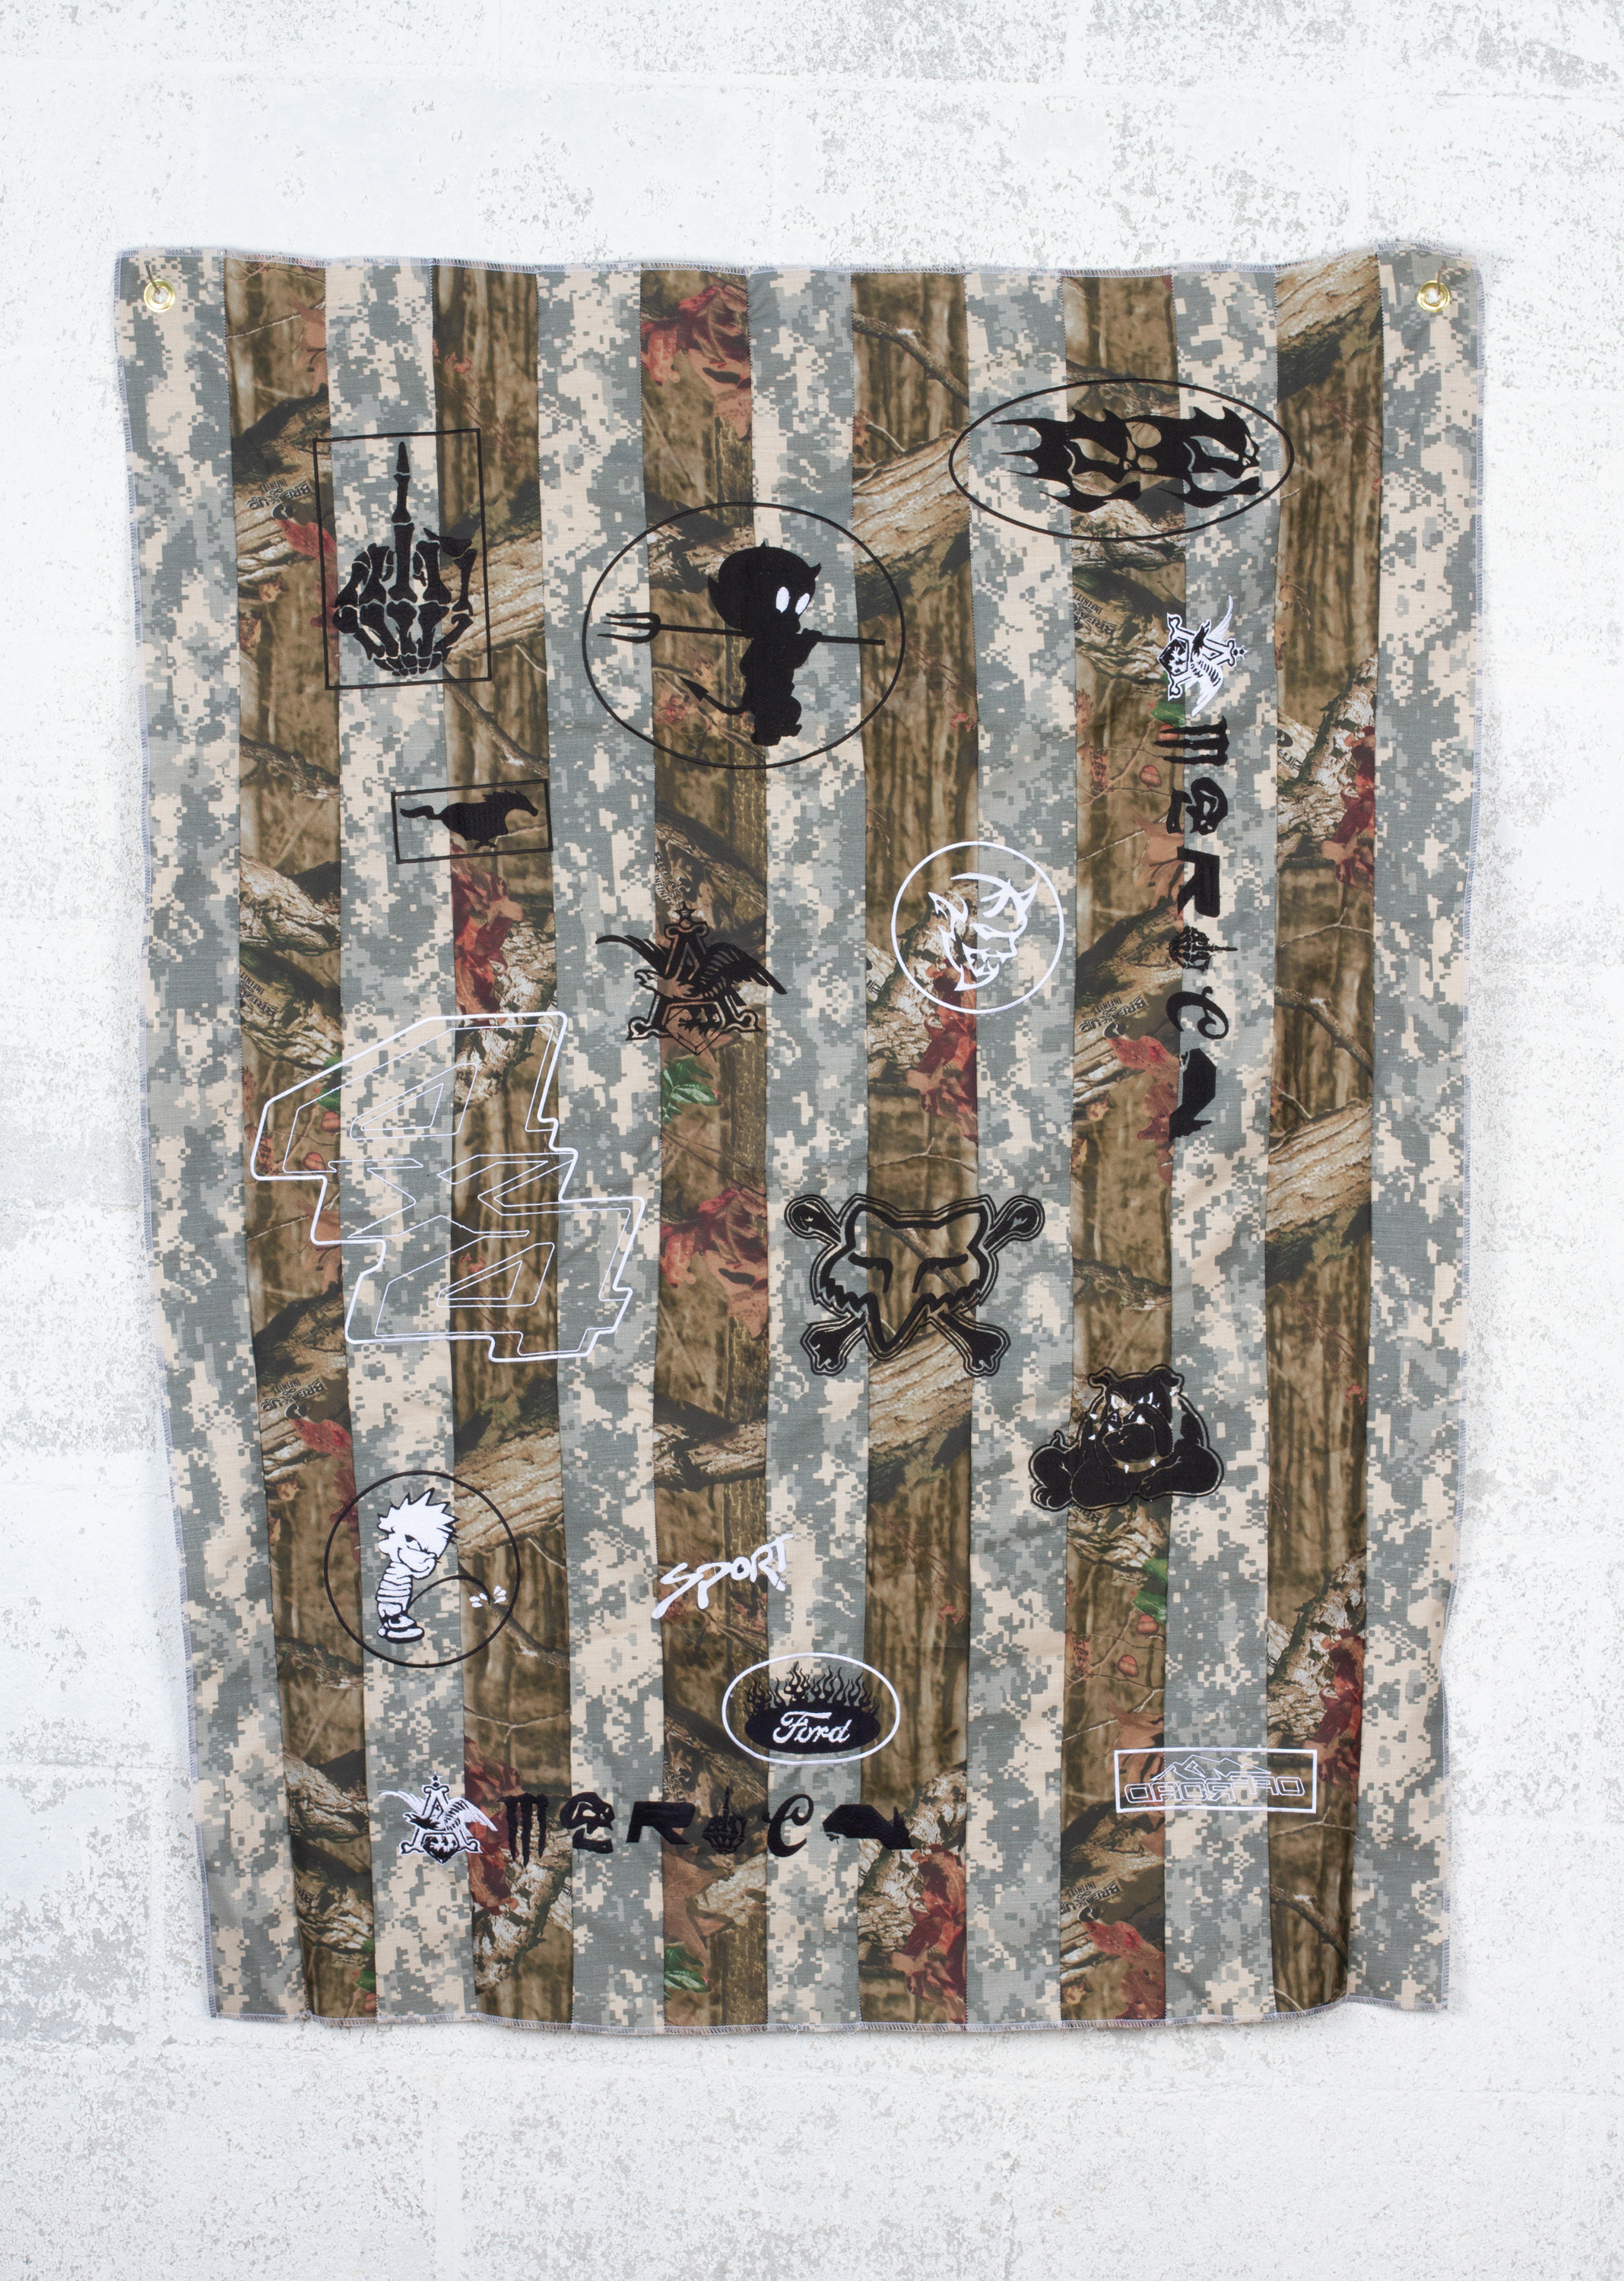 What Makes a Flag American? #2 (digi camo/break-up infinity camo), 2018  3x5 feet  fabric, embroidered logos, hardware